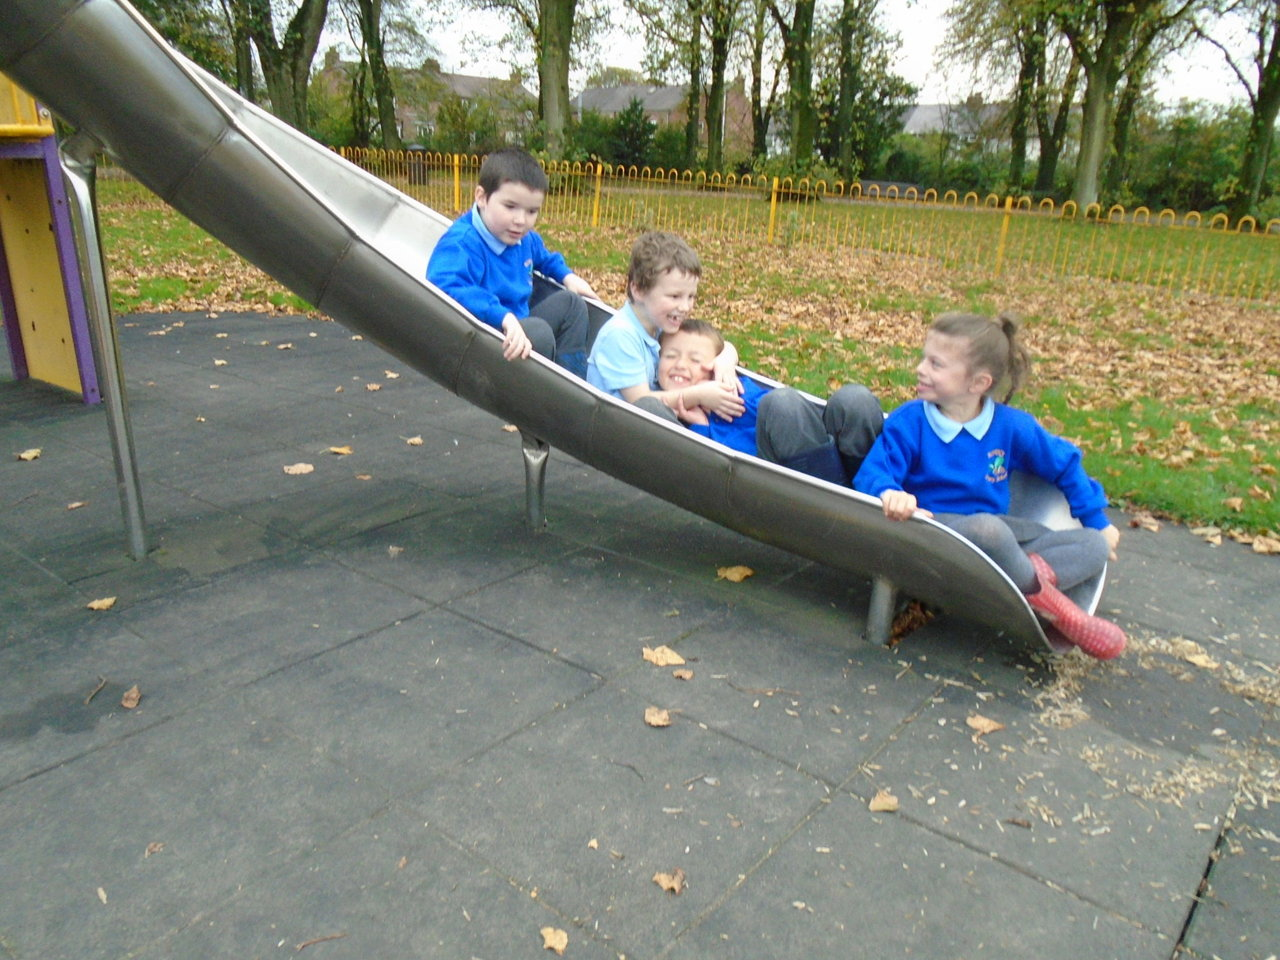 Elm Geography Trip to Haslam Park | Acorns Primary School